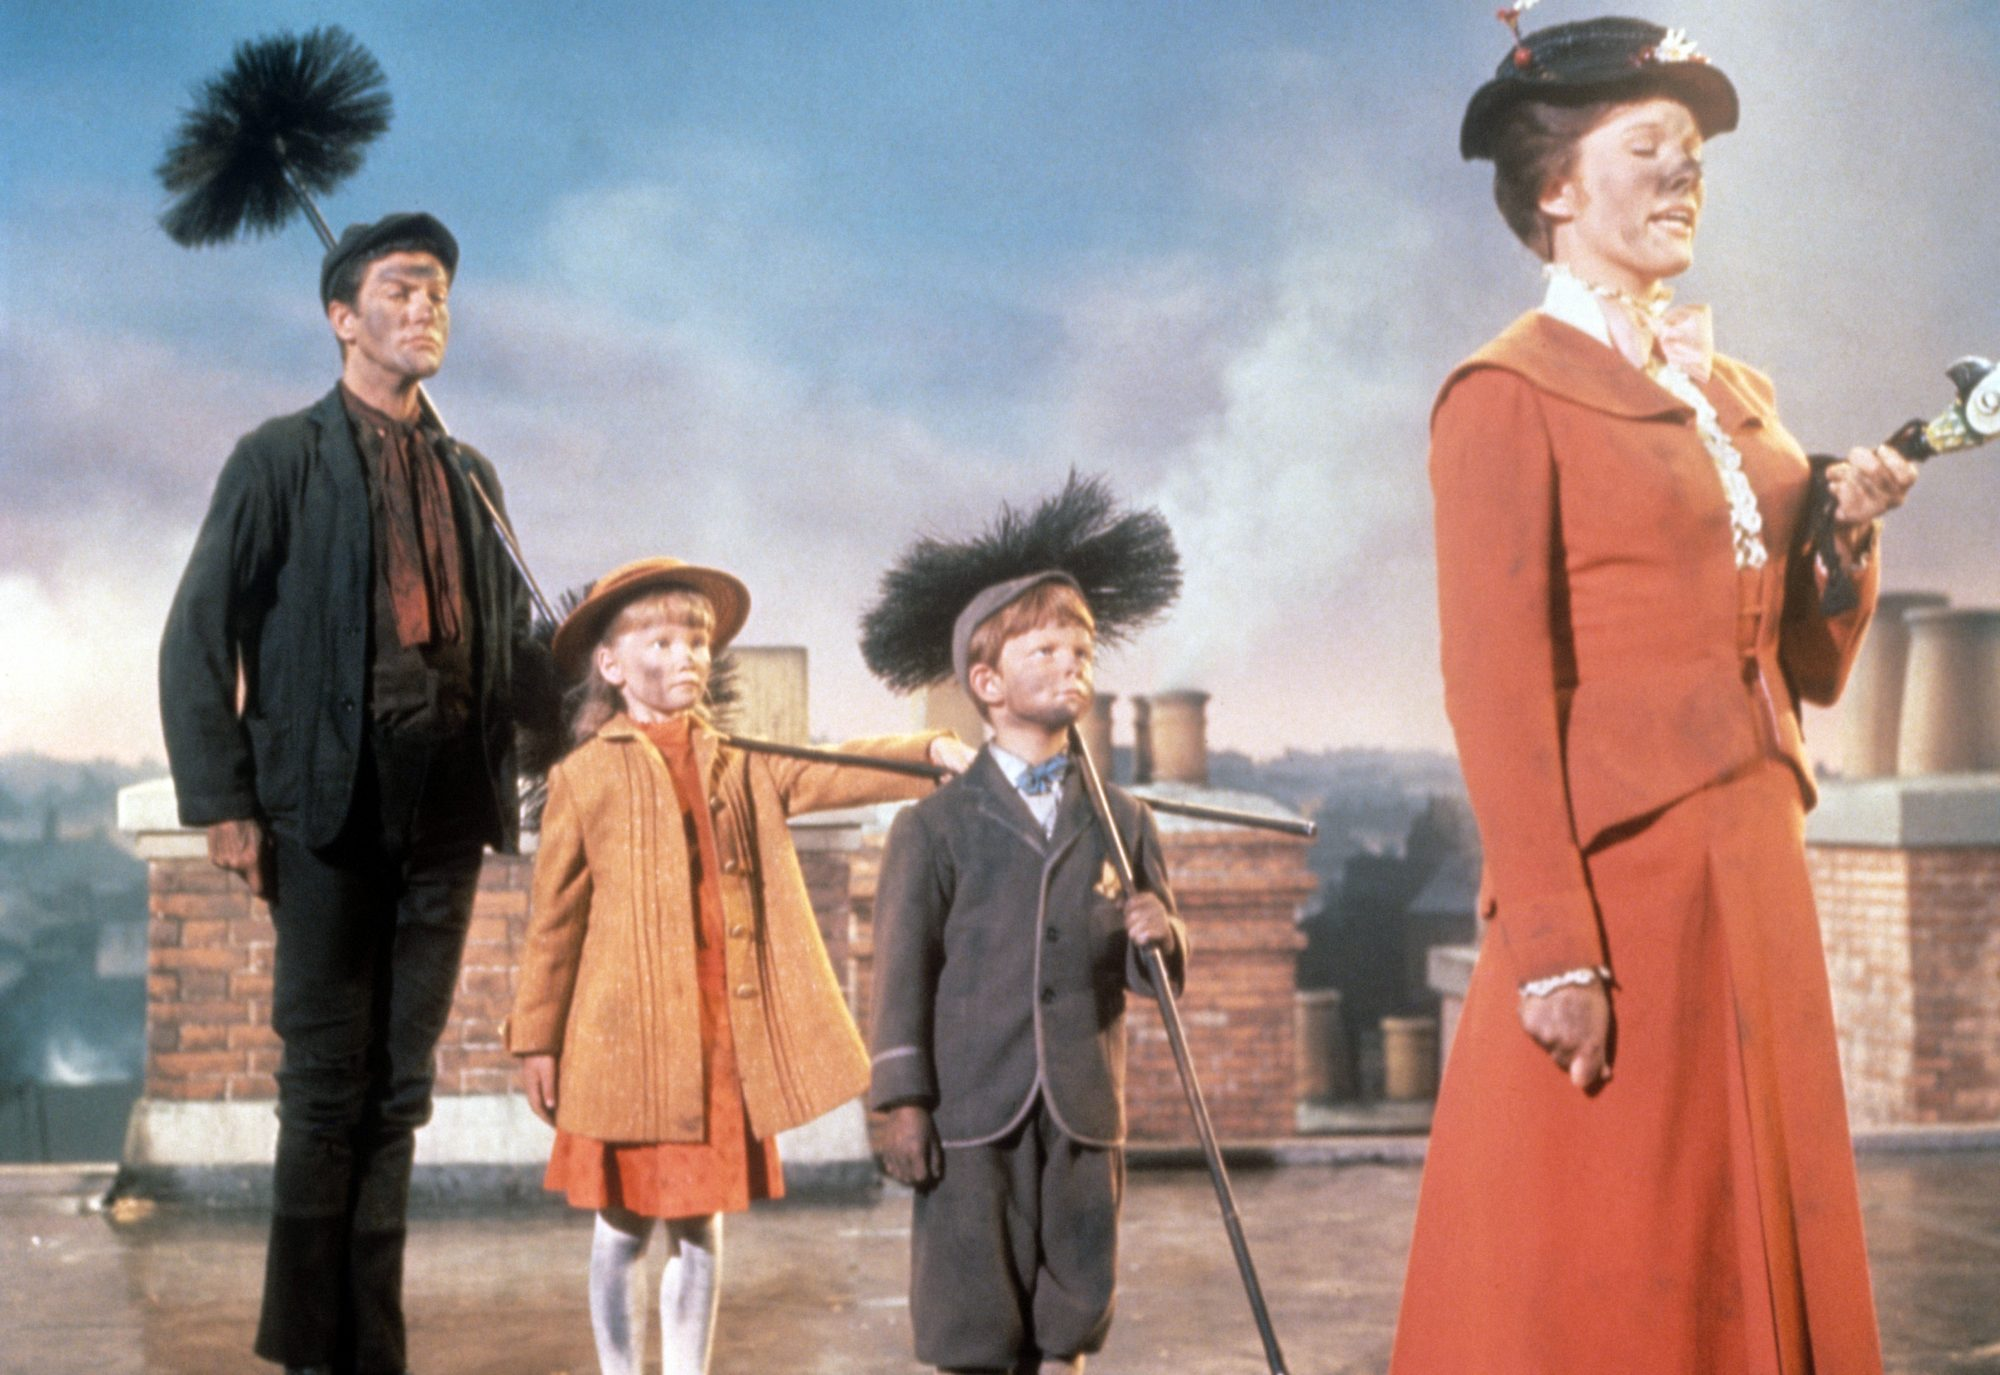 Julie Andrews In The Role Of Mary Poppins With Karen Dotrice, Matthew Garber And Dick Van Dyke